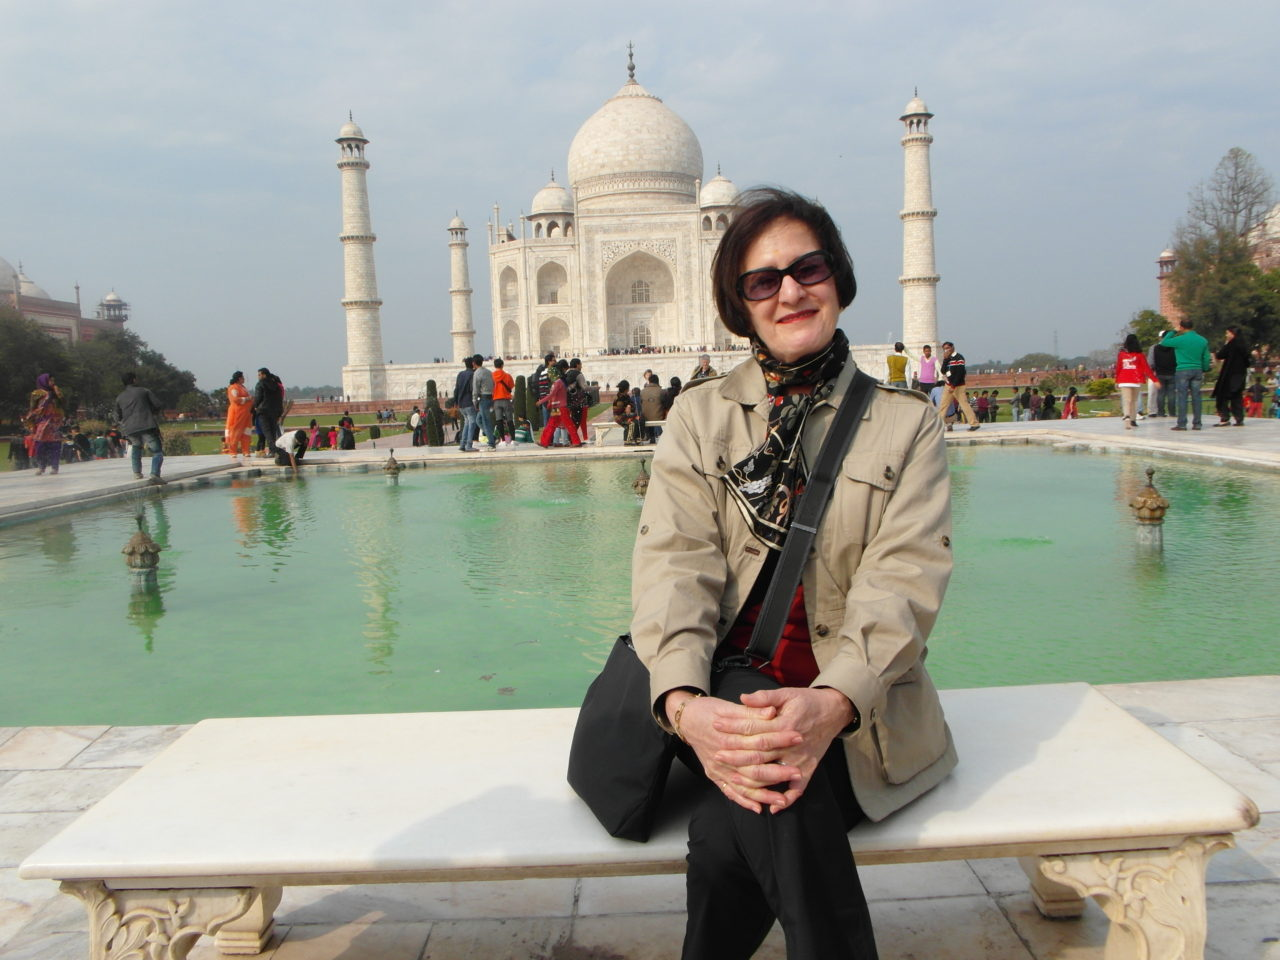 Lynn at the Taj Mahal in Agra, India ~ The Art of Travel Preparation